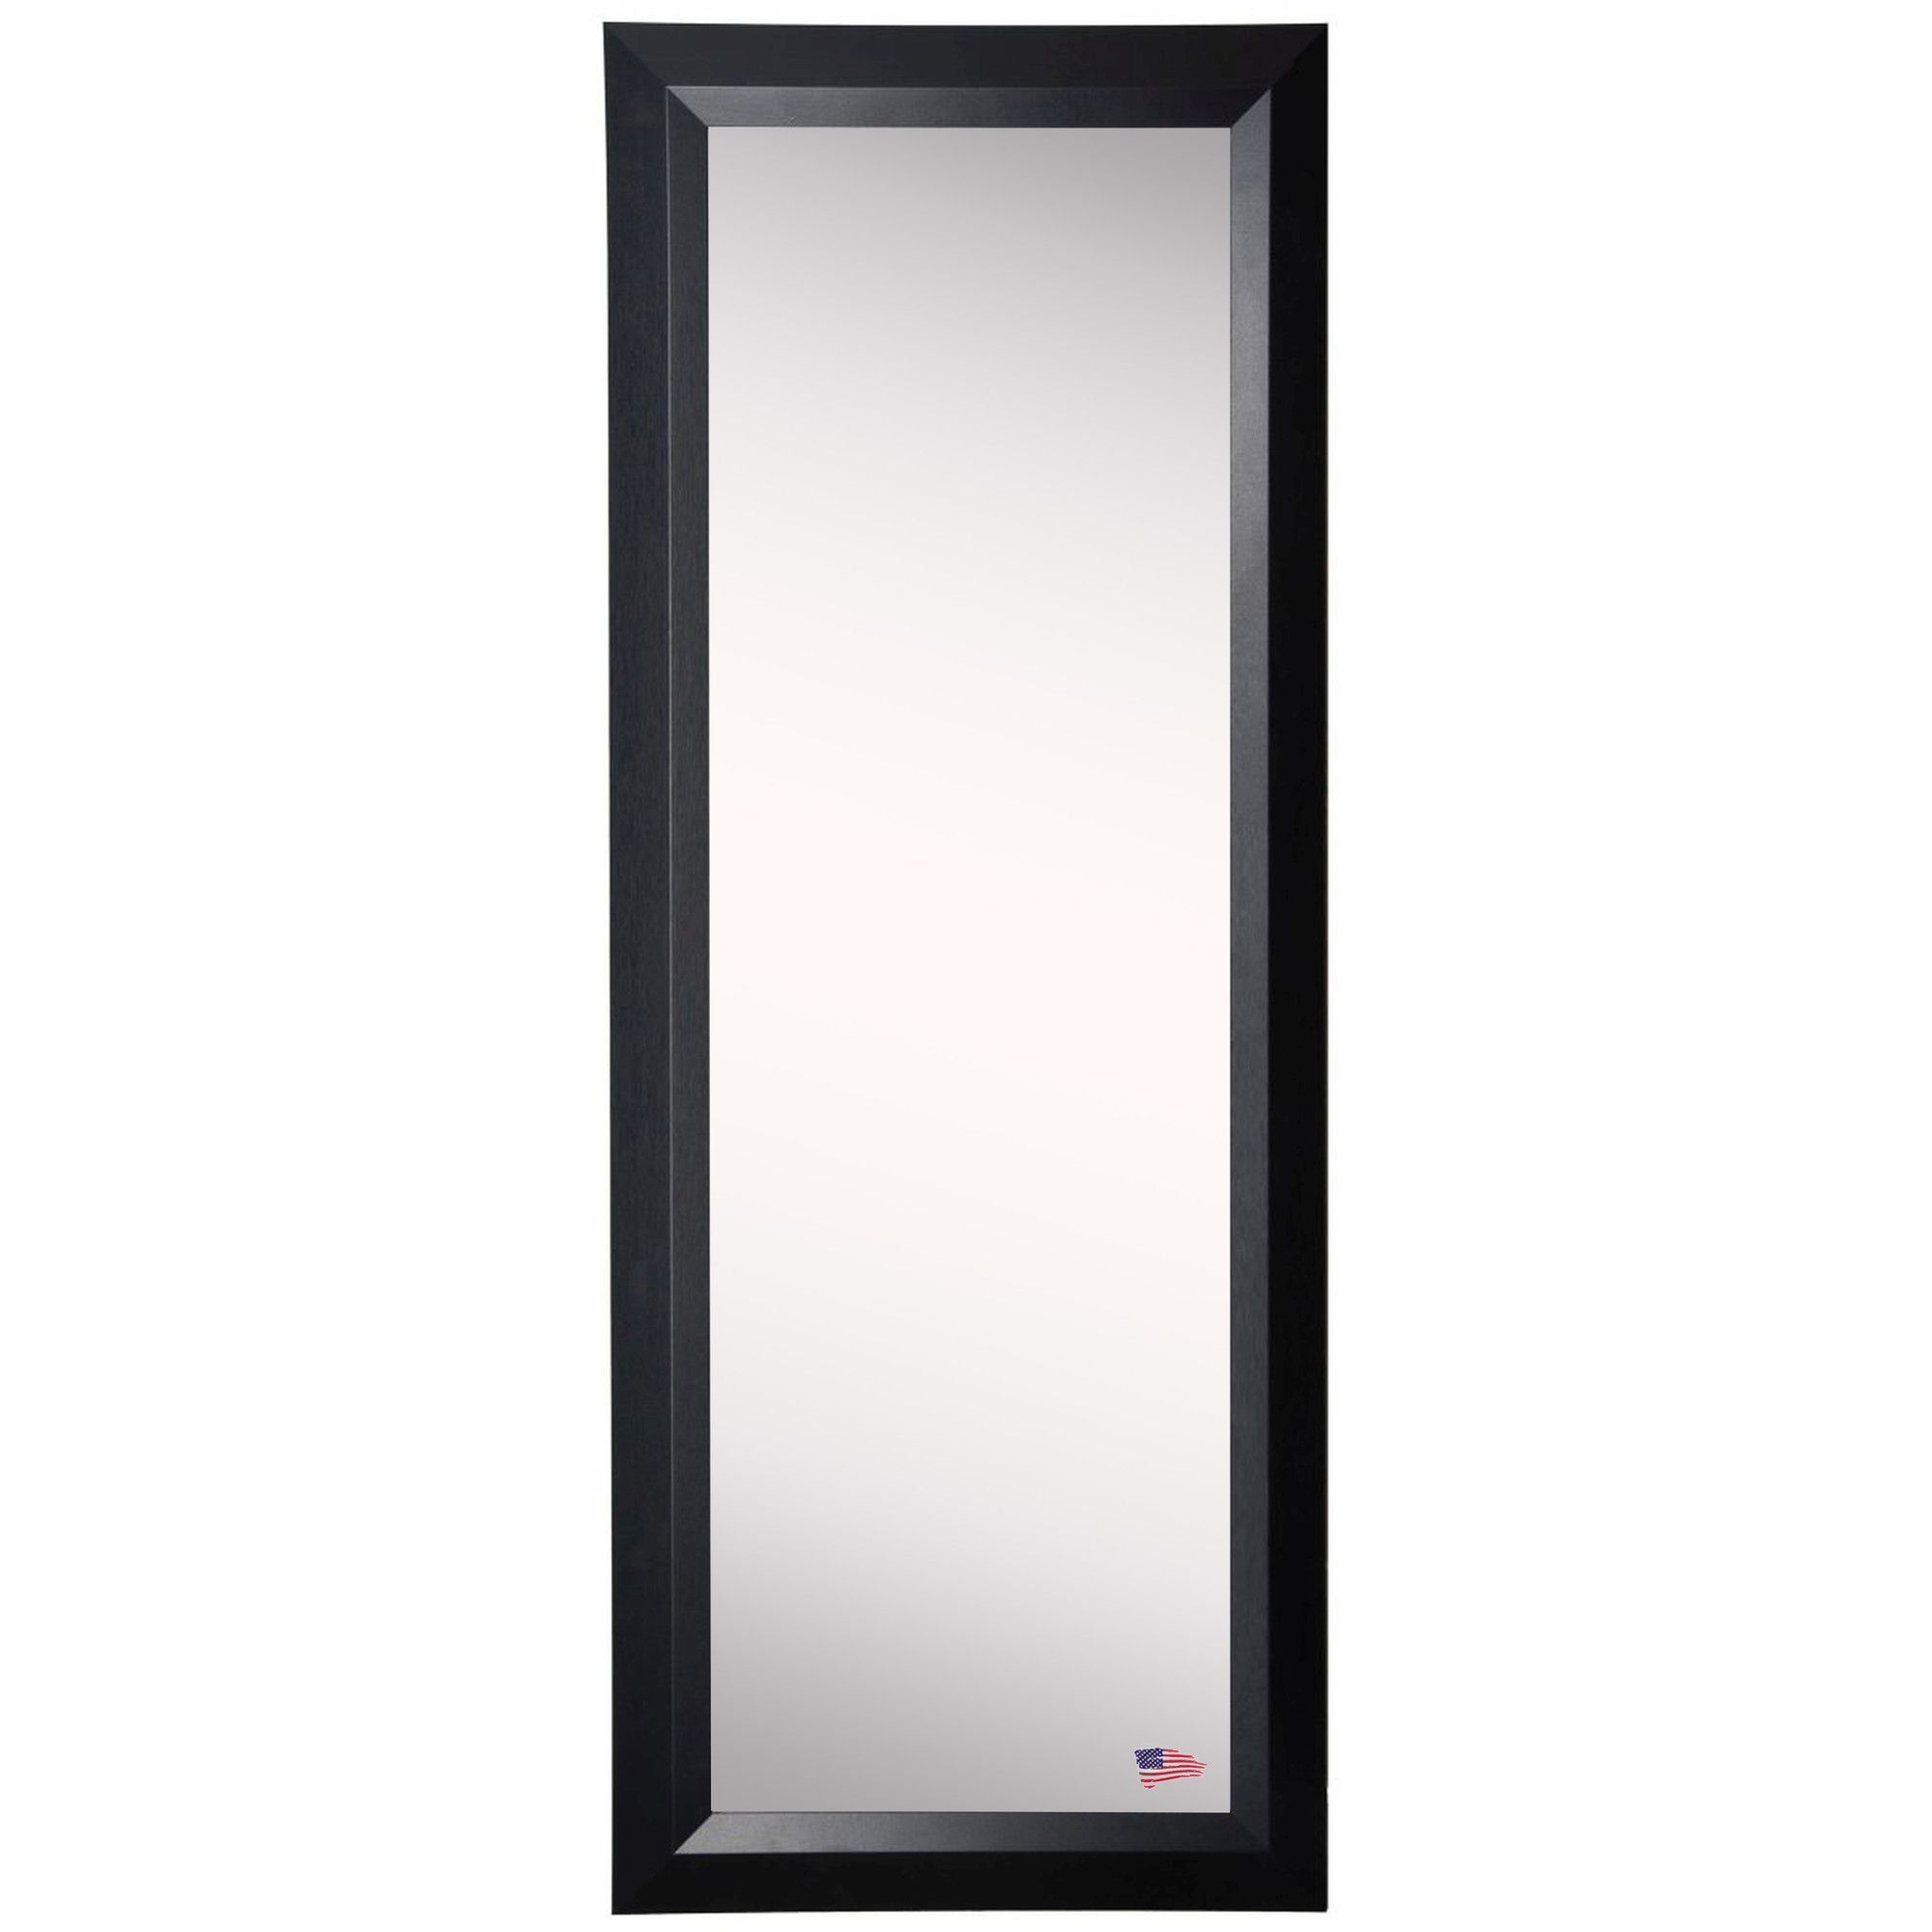 Ava Popular Black Slant Full Length Body Mirror | Products Throughout Dalessio Wide Tall Full Length Mirrors (View 2 of 30)